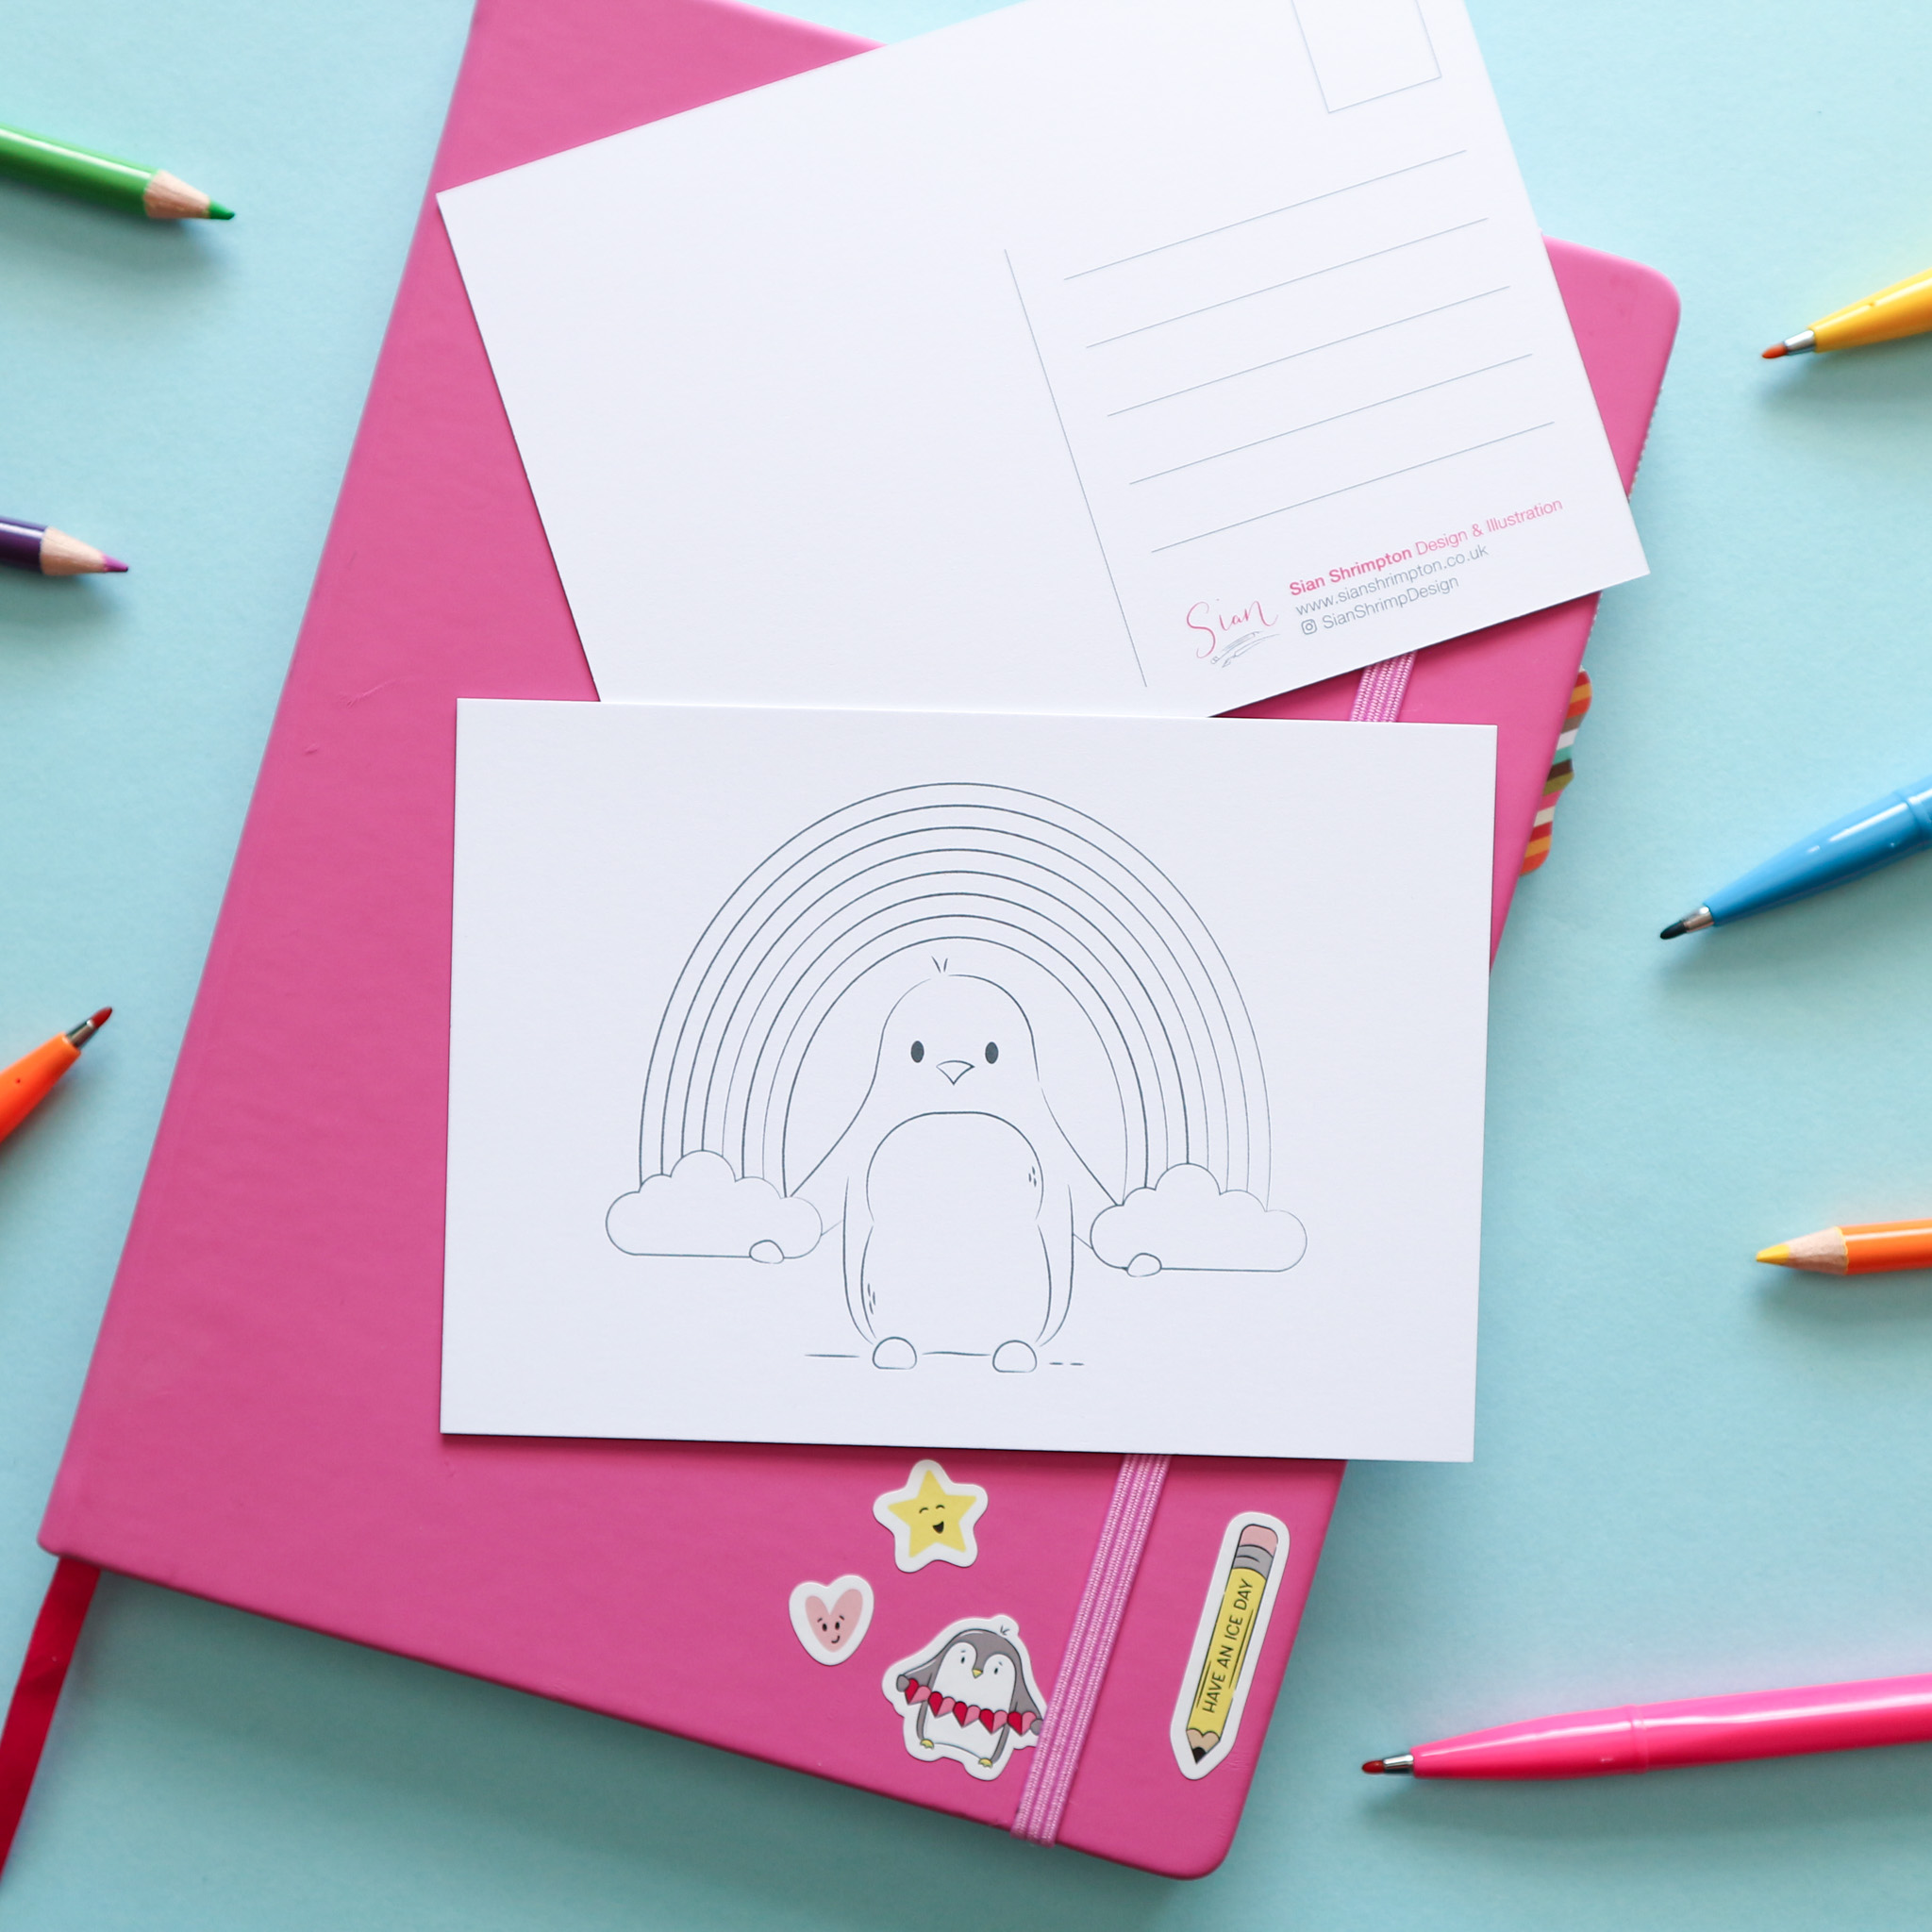 Postcard design showing an illustration which is un-coloured, to be coloured in by you or the recipient. This design shows a penguin holding a rainbow.